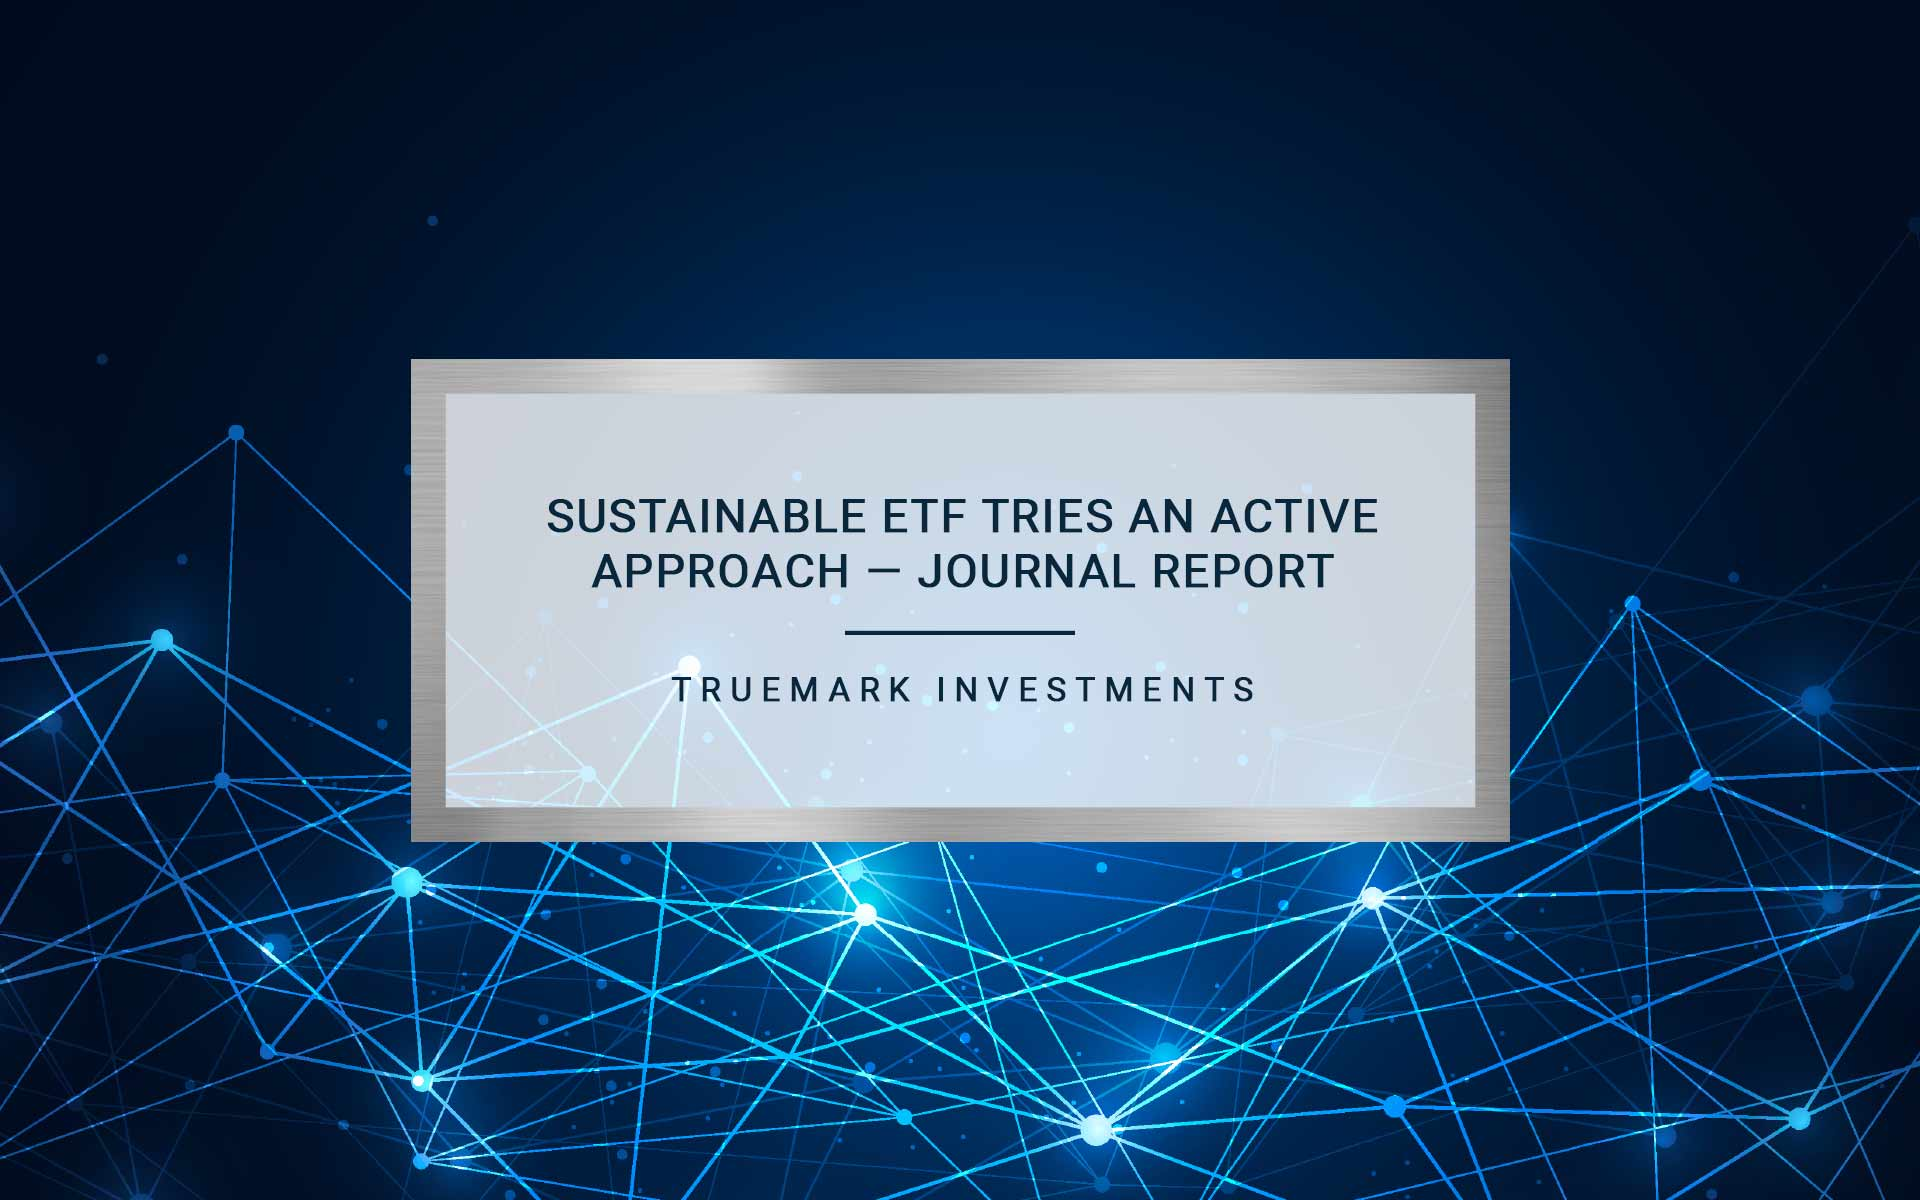 SUSTAINABLE ETF TRIES AN ACTIVE APPROACH — JOURNAL REPORT